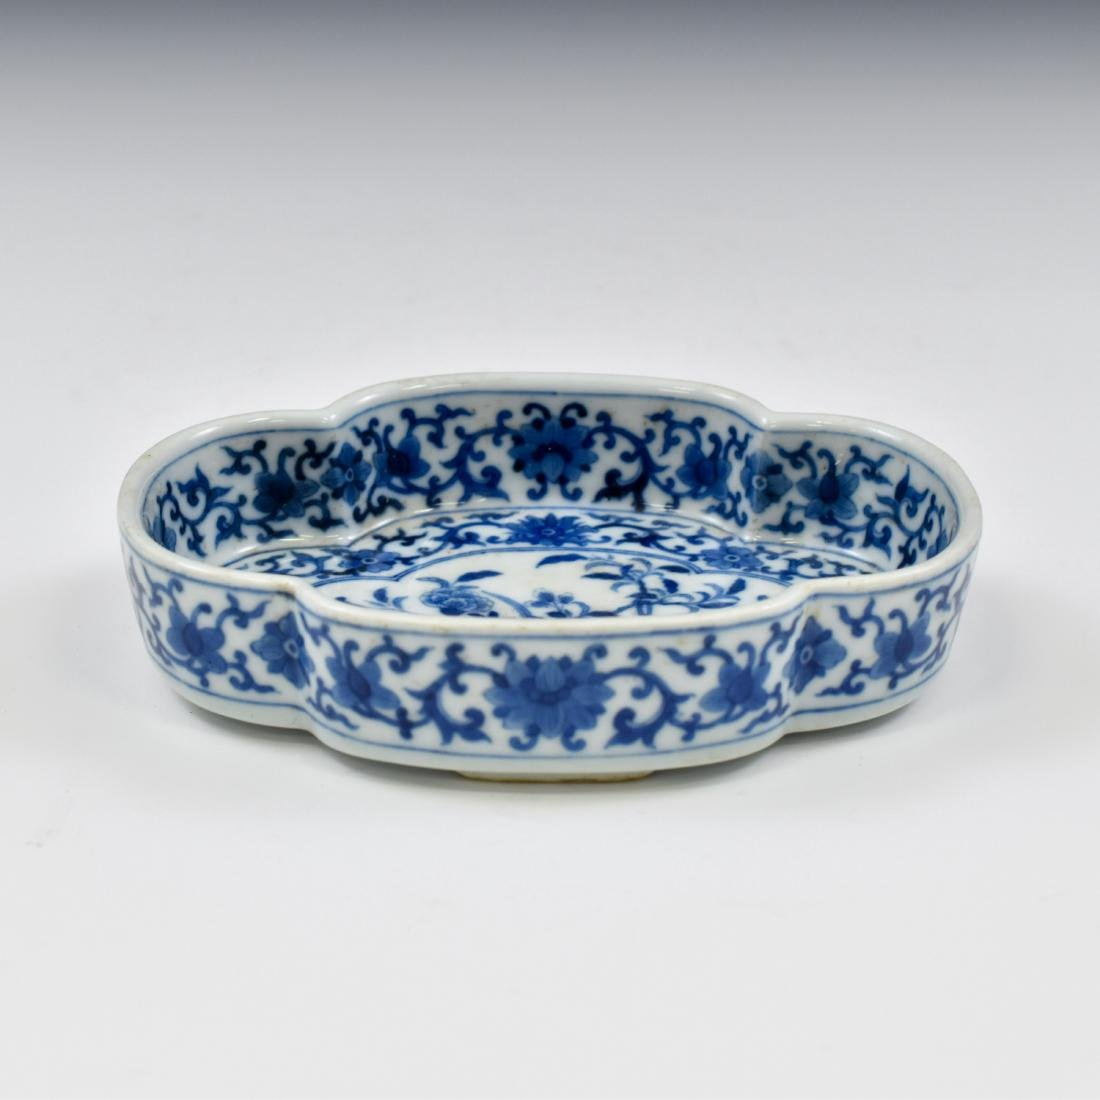 QING CHINESE NARCISSUS PORCELAIN PLATE - 2